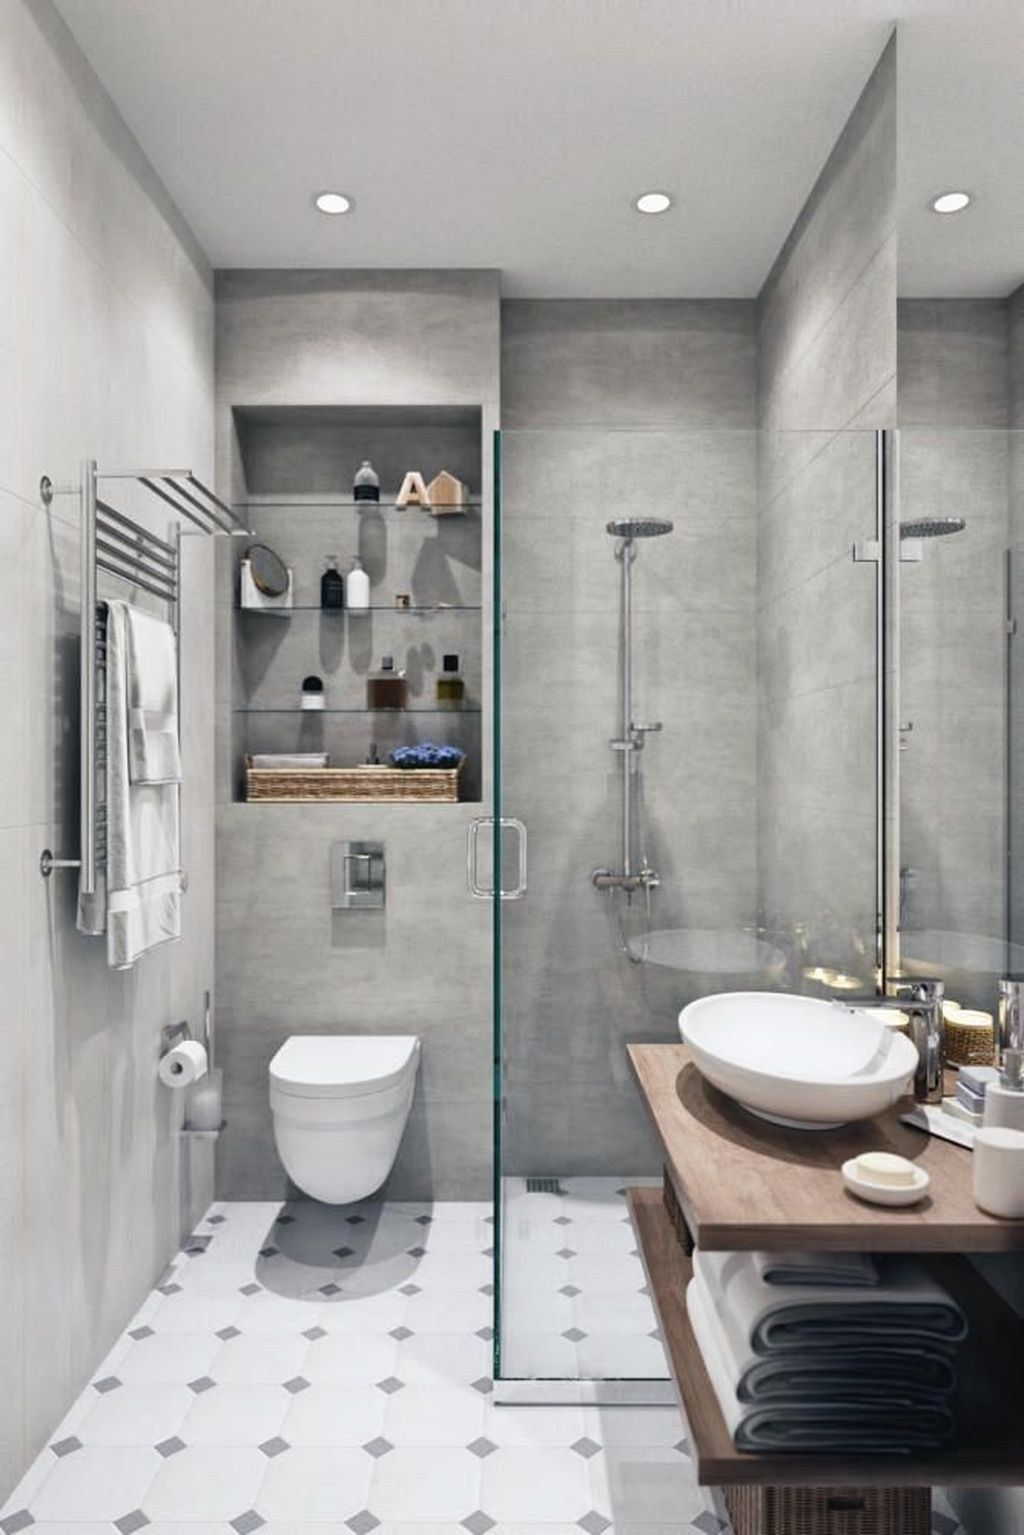 20 Hottest Small Bathroom Remodel Ideas For Space Saving Small